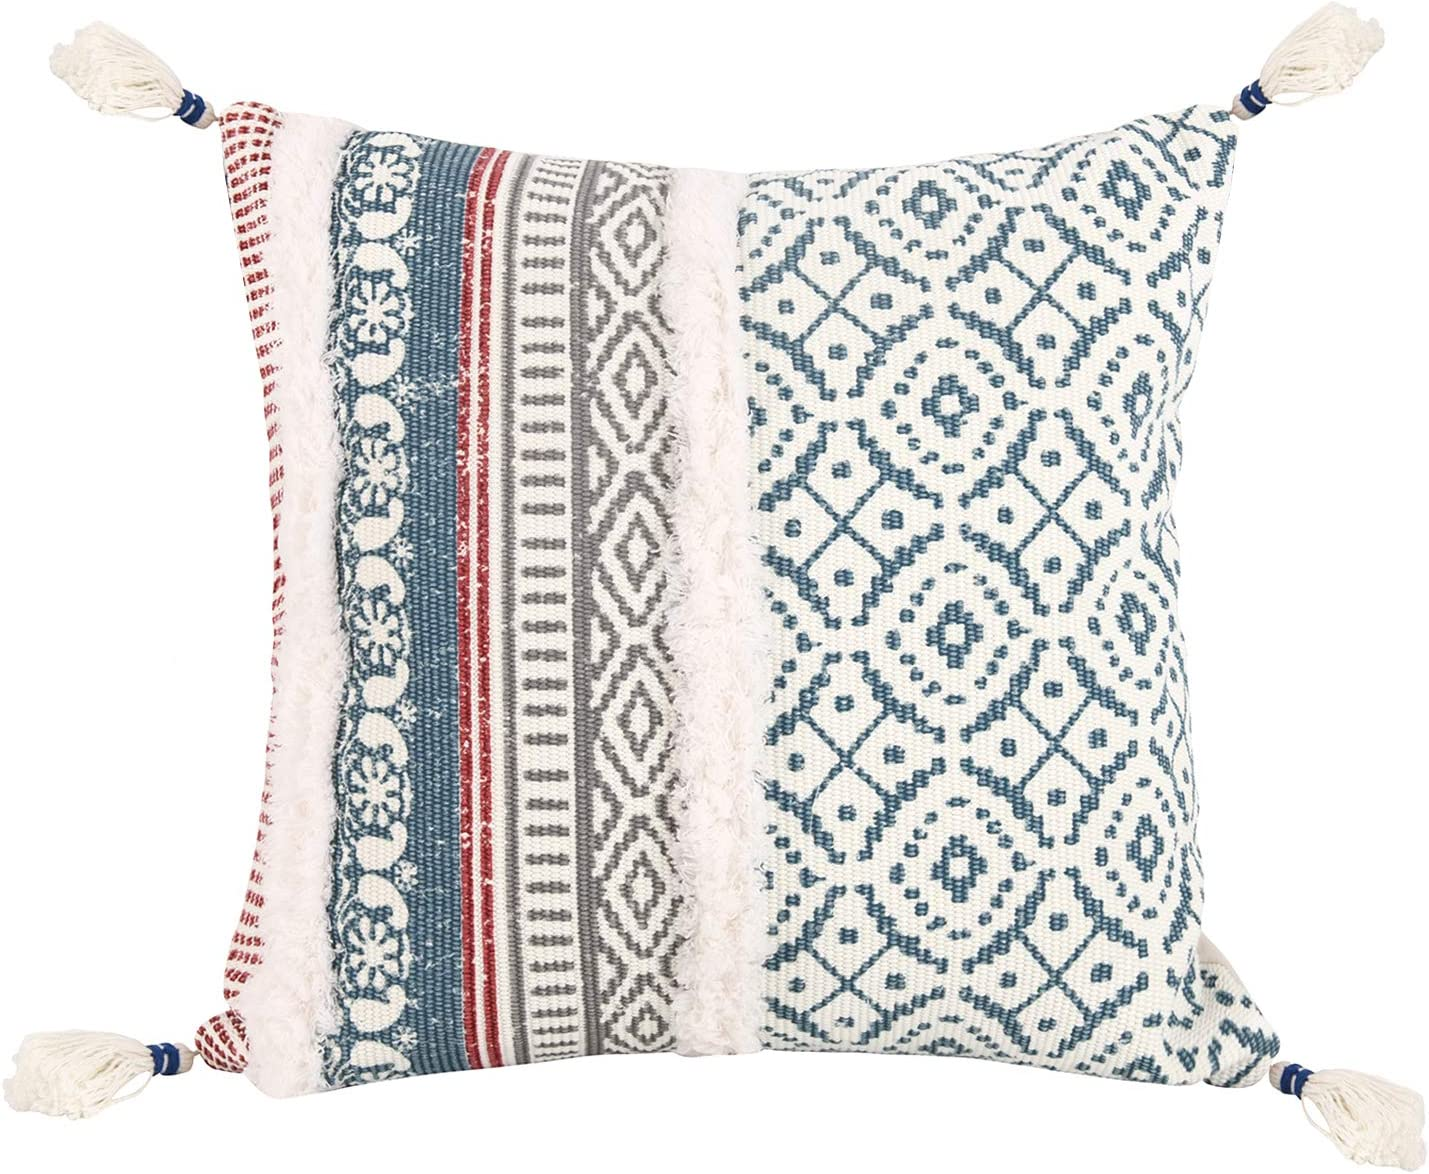 Merrycolor Tufted Decorative Throw Pillow Cover For Couch Sofa Woven Boho Tribal Pillow Cases With Tassel Square Cushion Cover Moroccan Style Accent Pillow 18x18 Inches Blue Home Kitchen